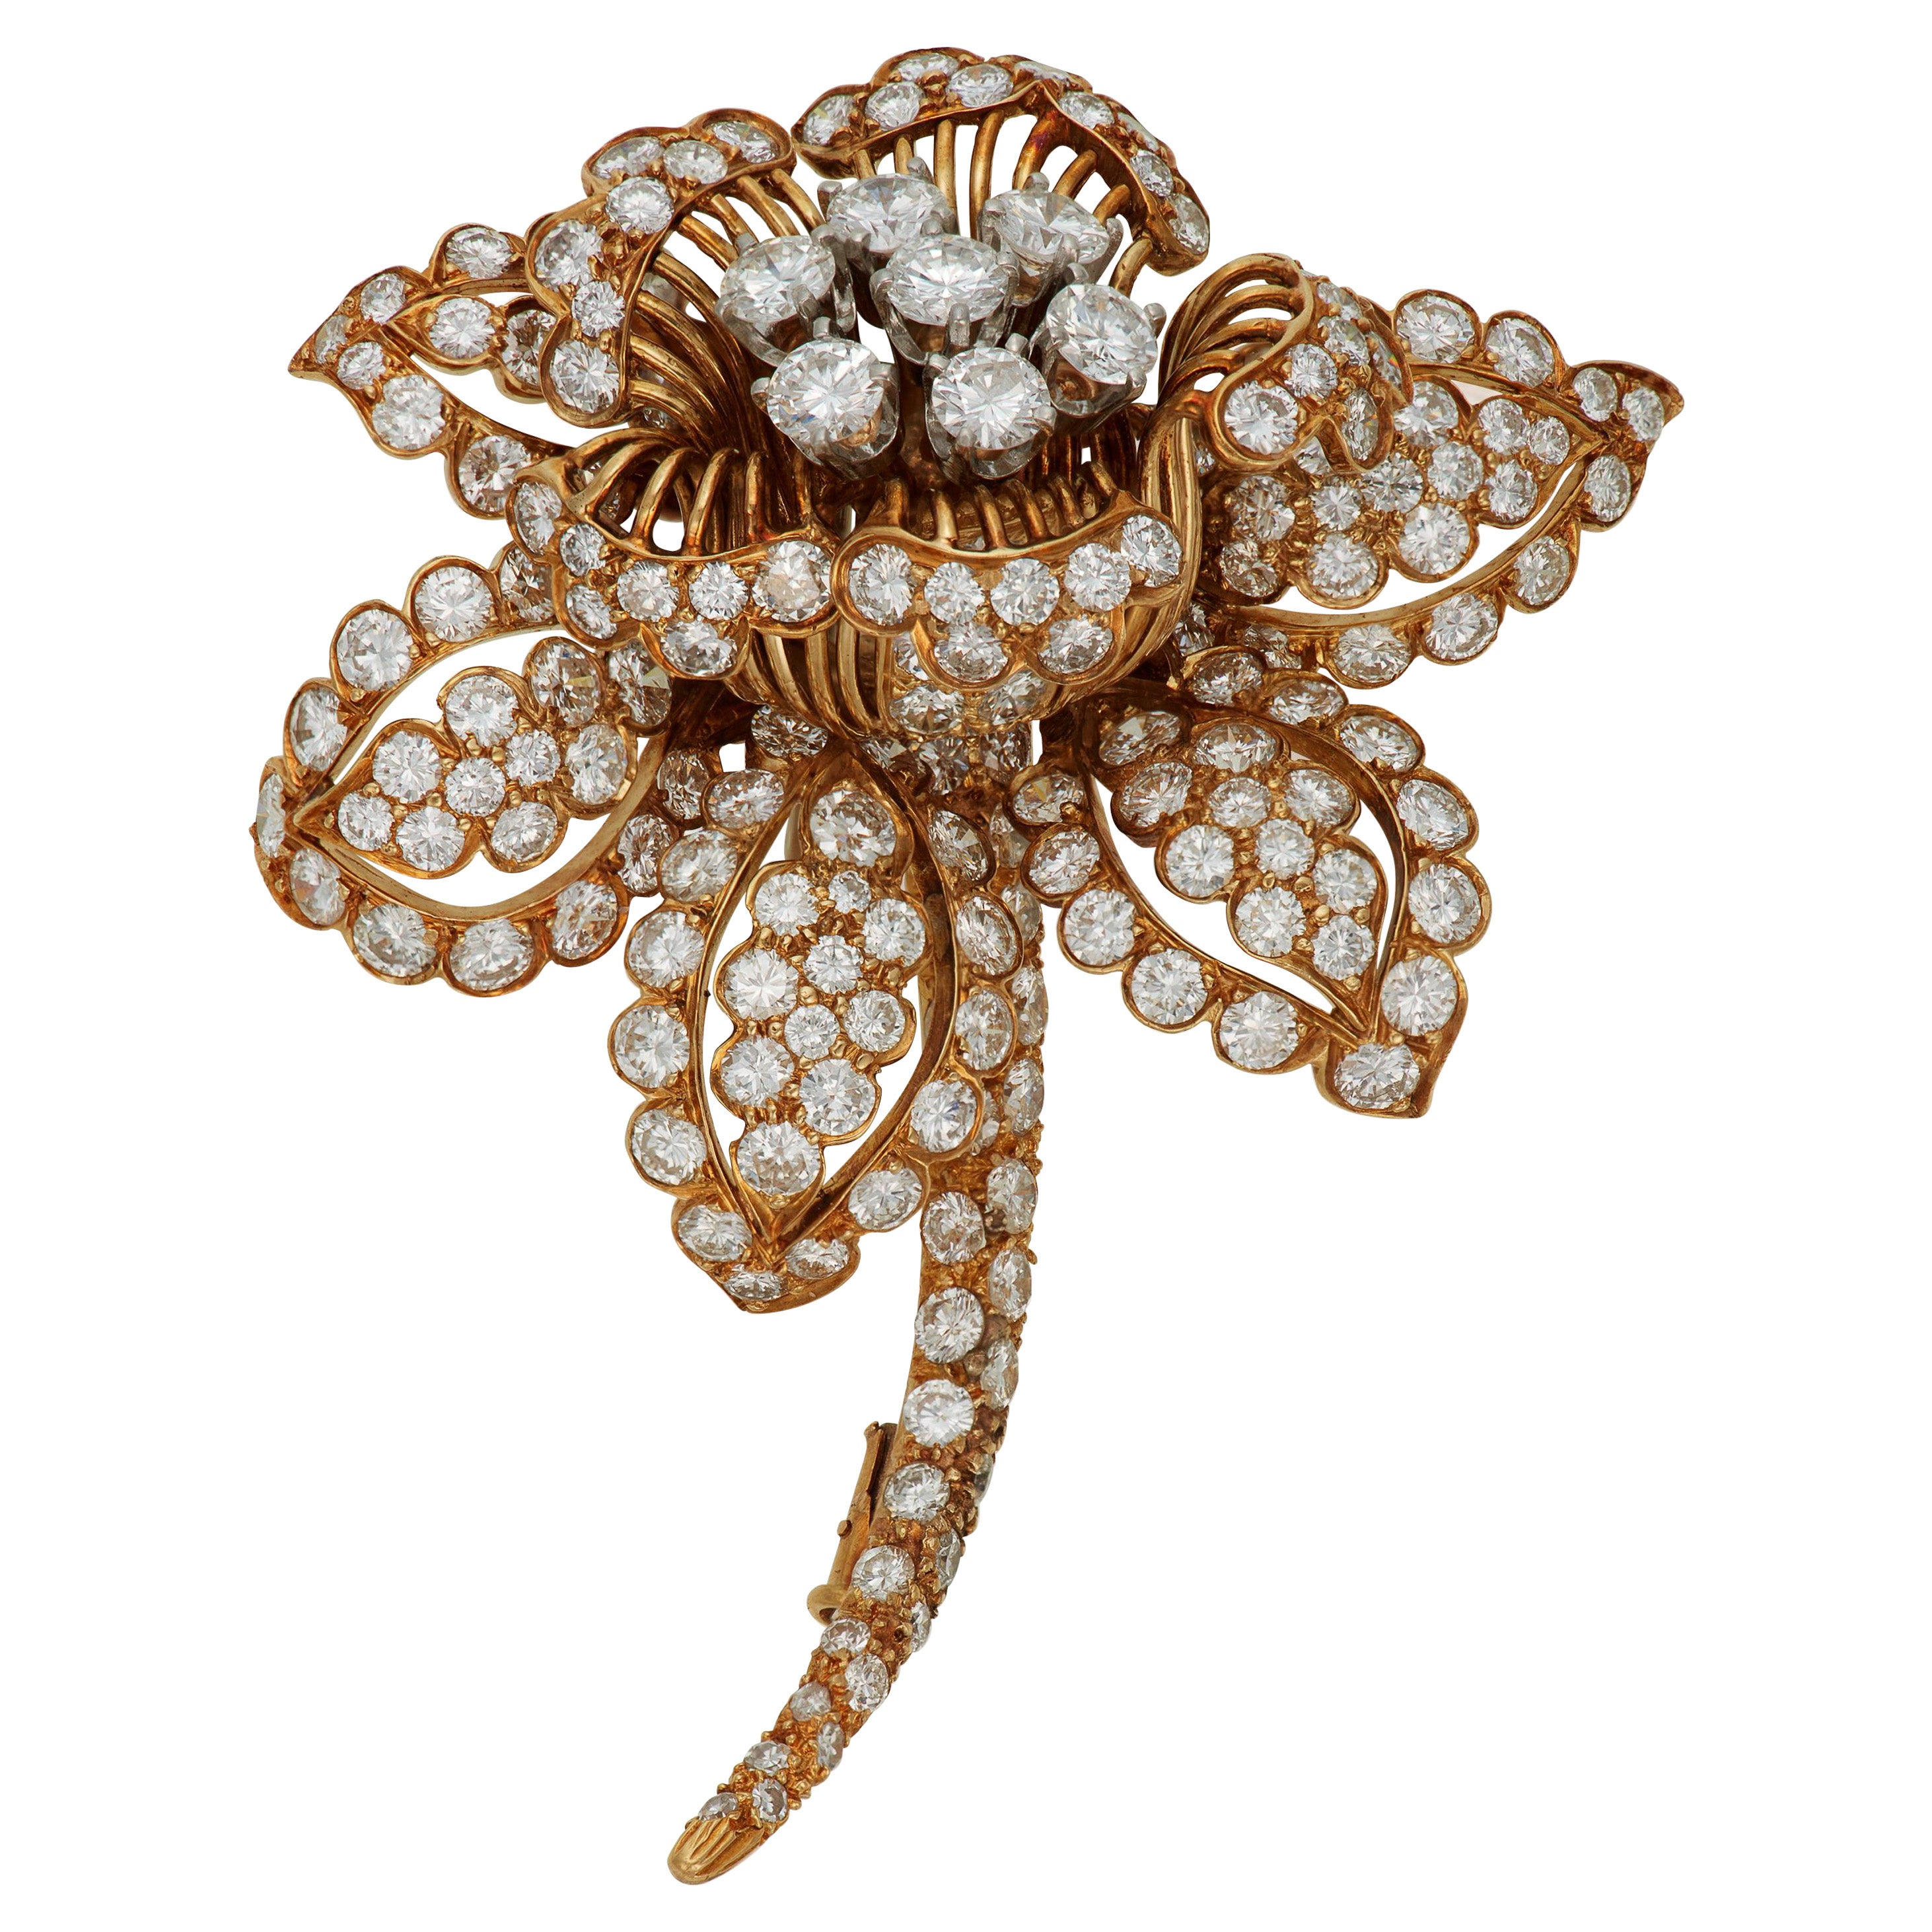 David Webb, a Magnificent Signed Diamond Flower Brooch, with 184 Round Diamonds